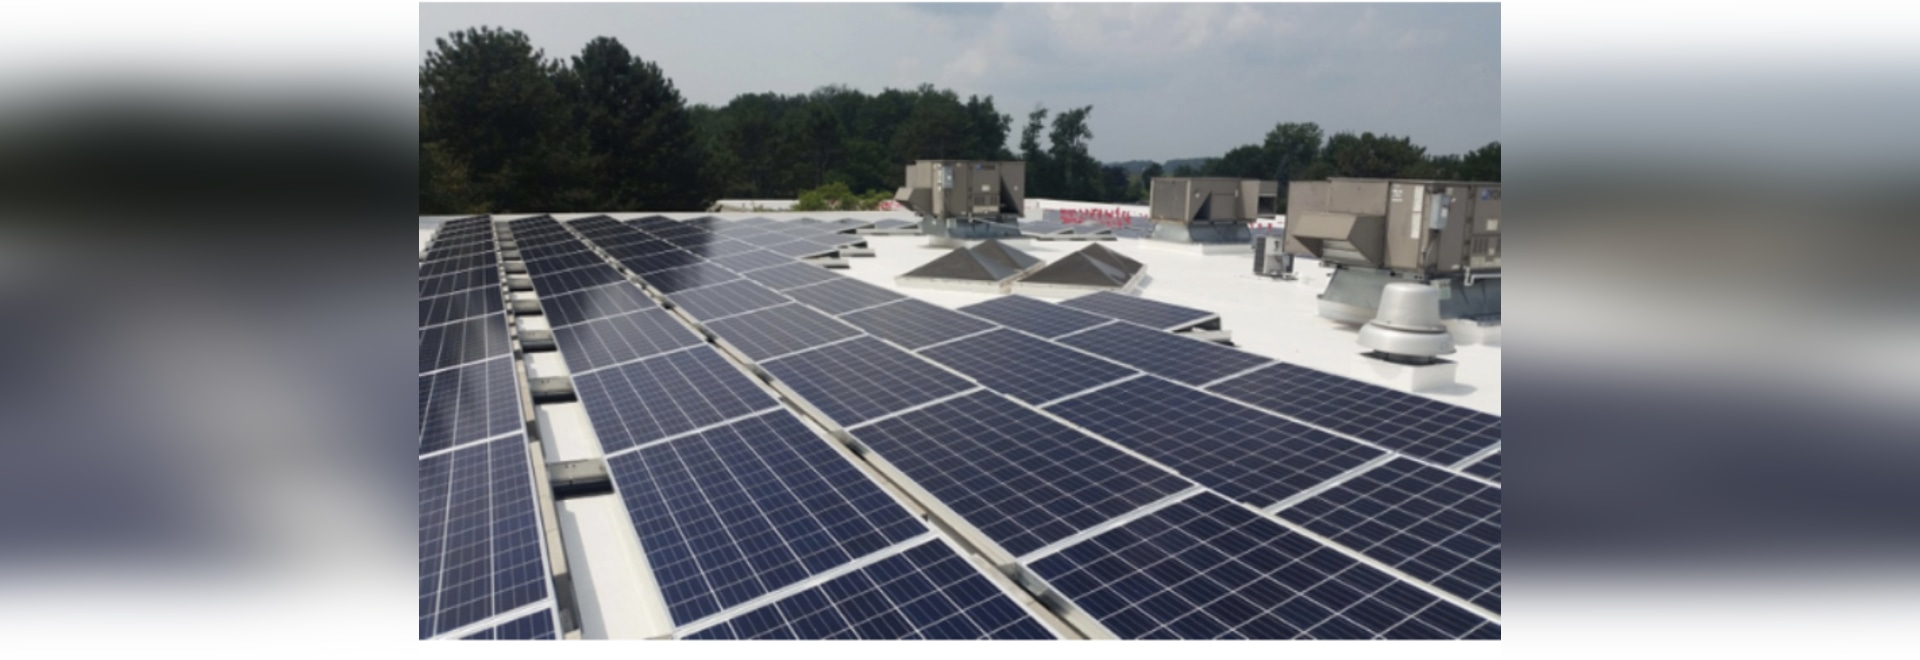 Valve Manufacturer Commits to Sustainable Energy with Solar Initiative